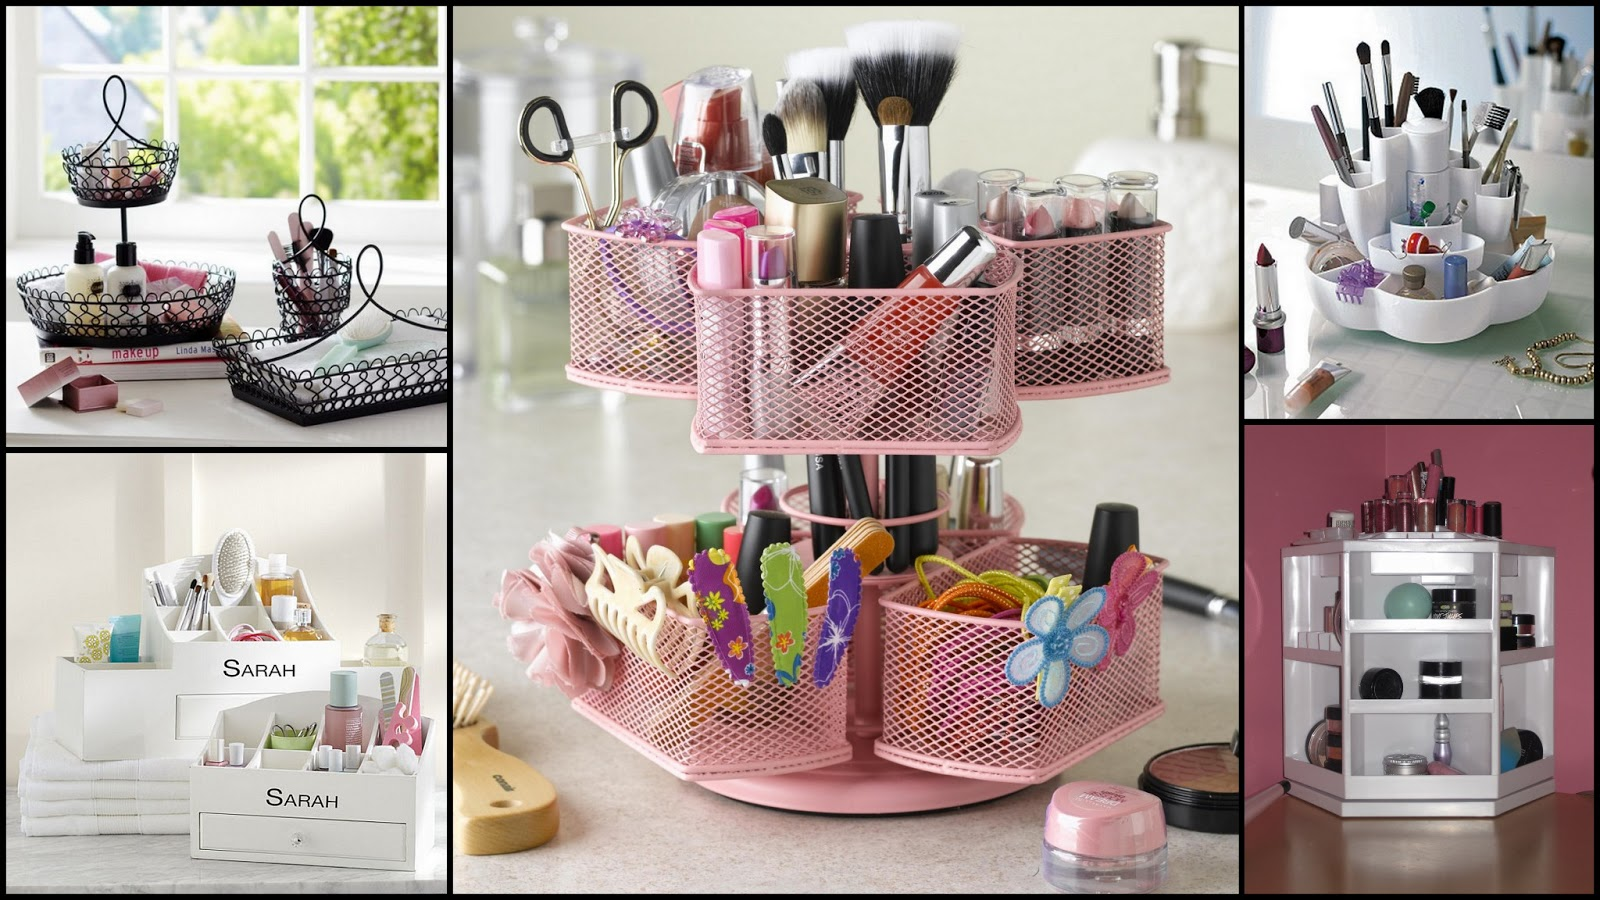 Le boudoir d 39 ines comment ranger son make up quand on - Rangement maquillage fait maison ...